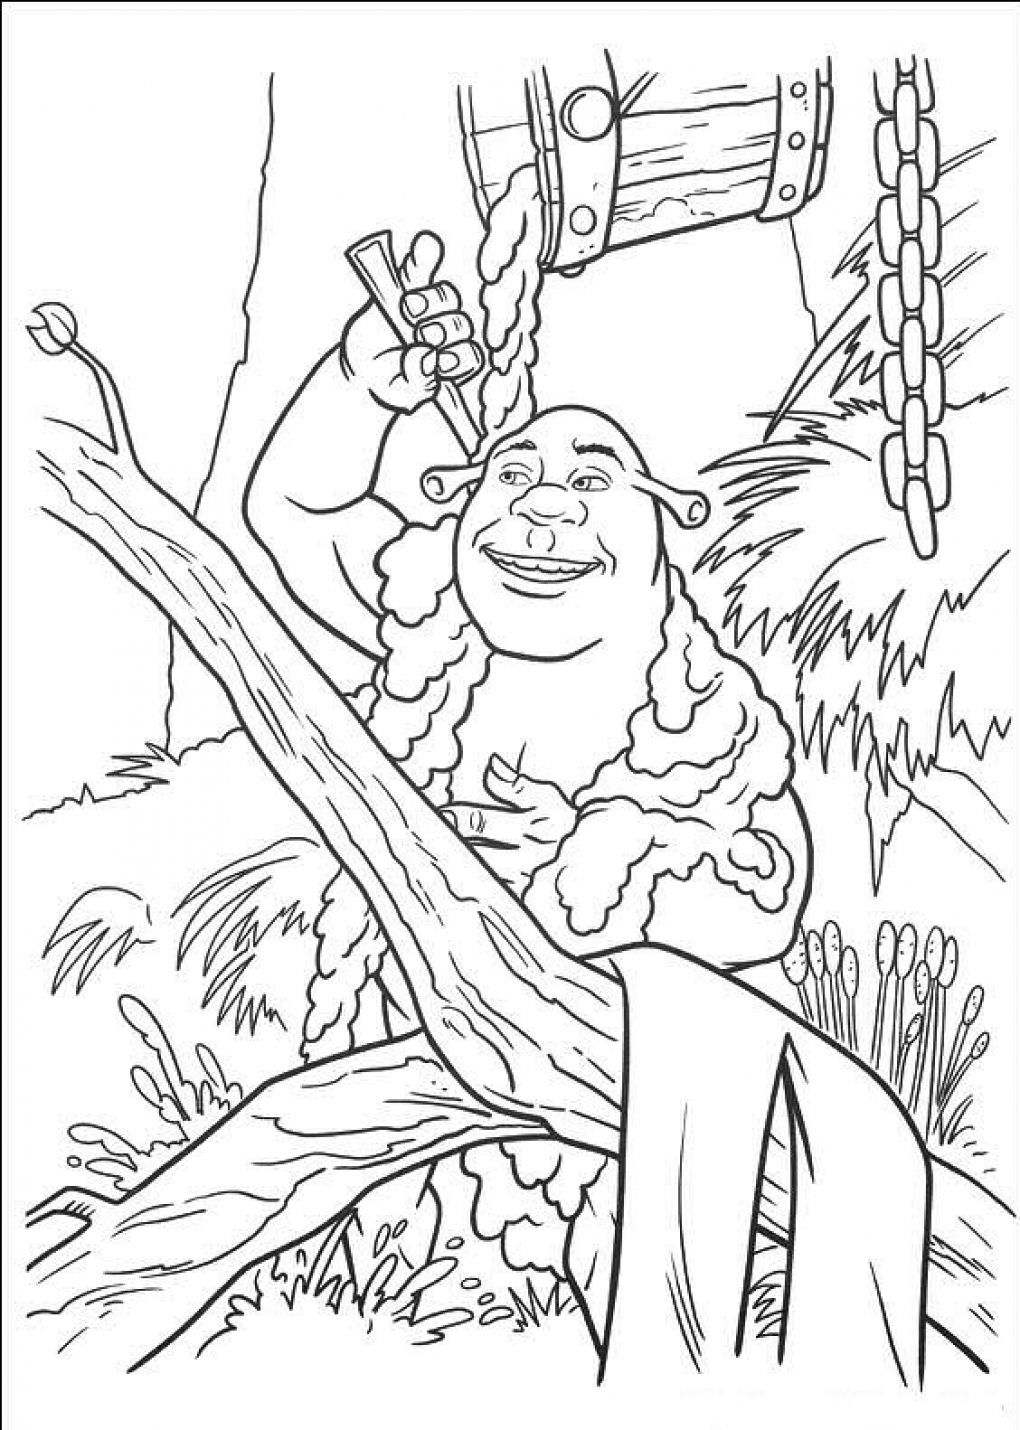 schreak coloring pages free - photo#9